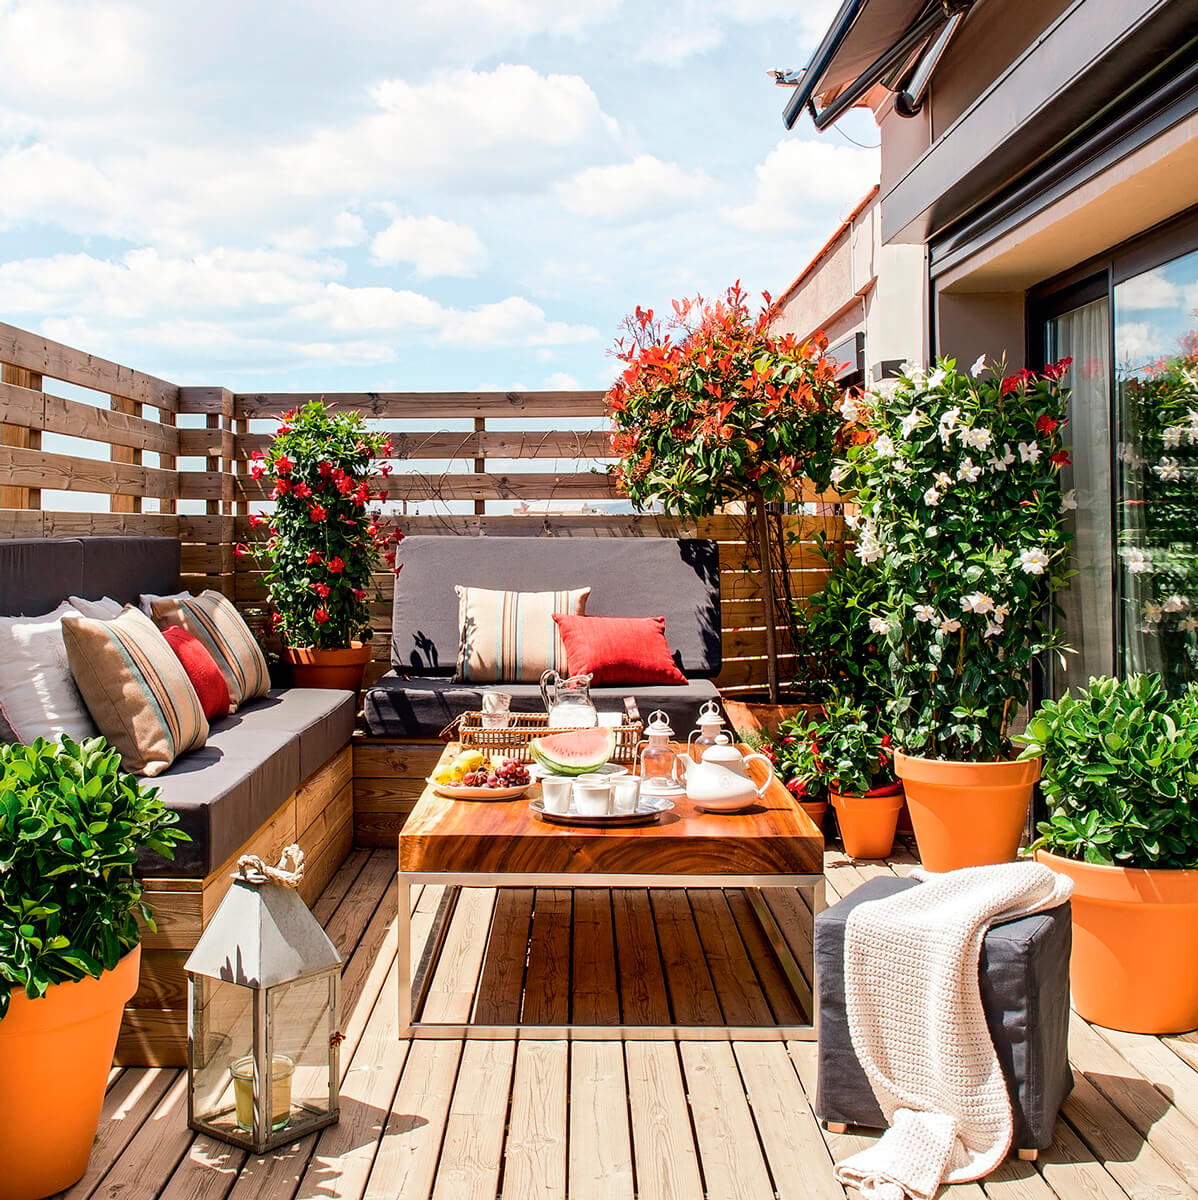 10 ideas para decorar terrazas y balcones handfie diy for Idea jardineria terraza balcon